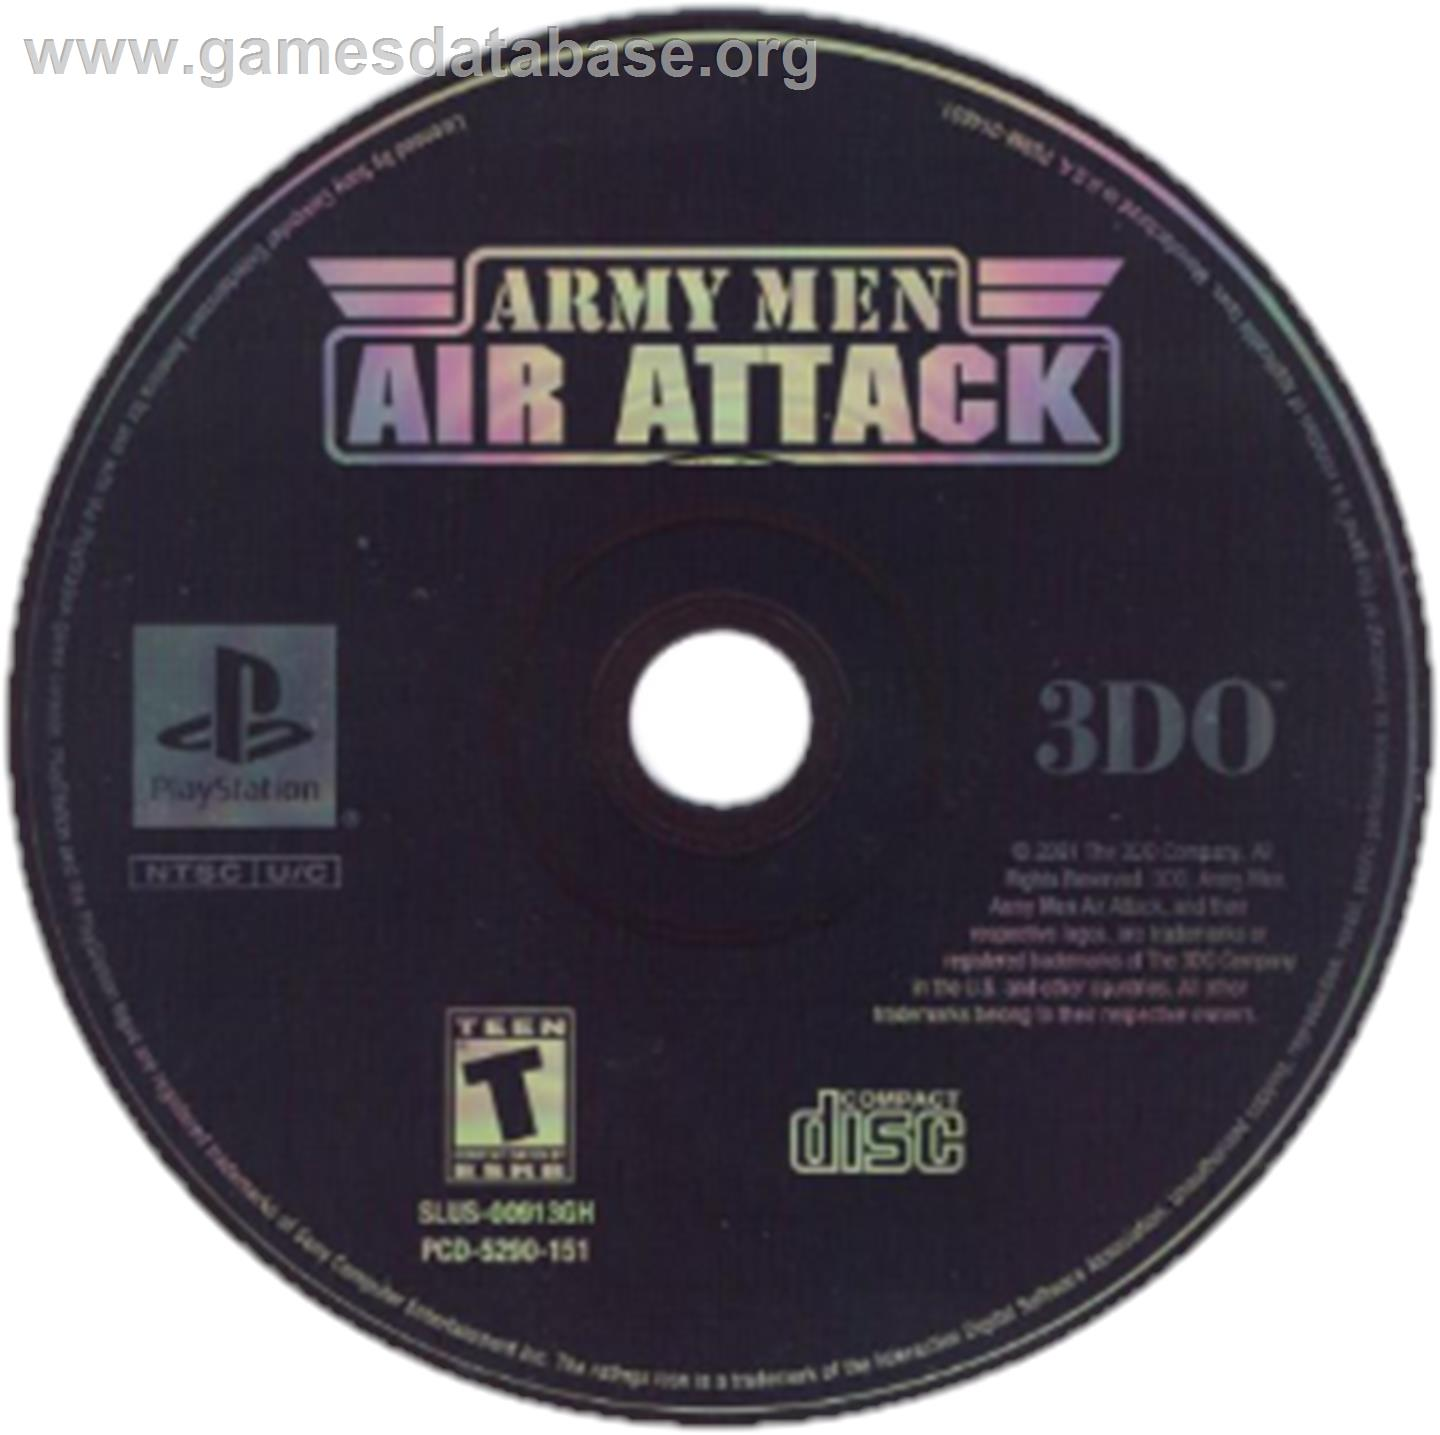 Artwork on the CD for Army Men: Air Attack on the Sony Playstation.